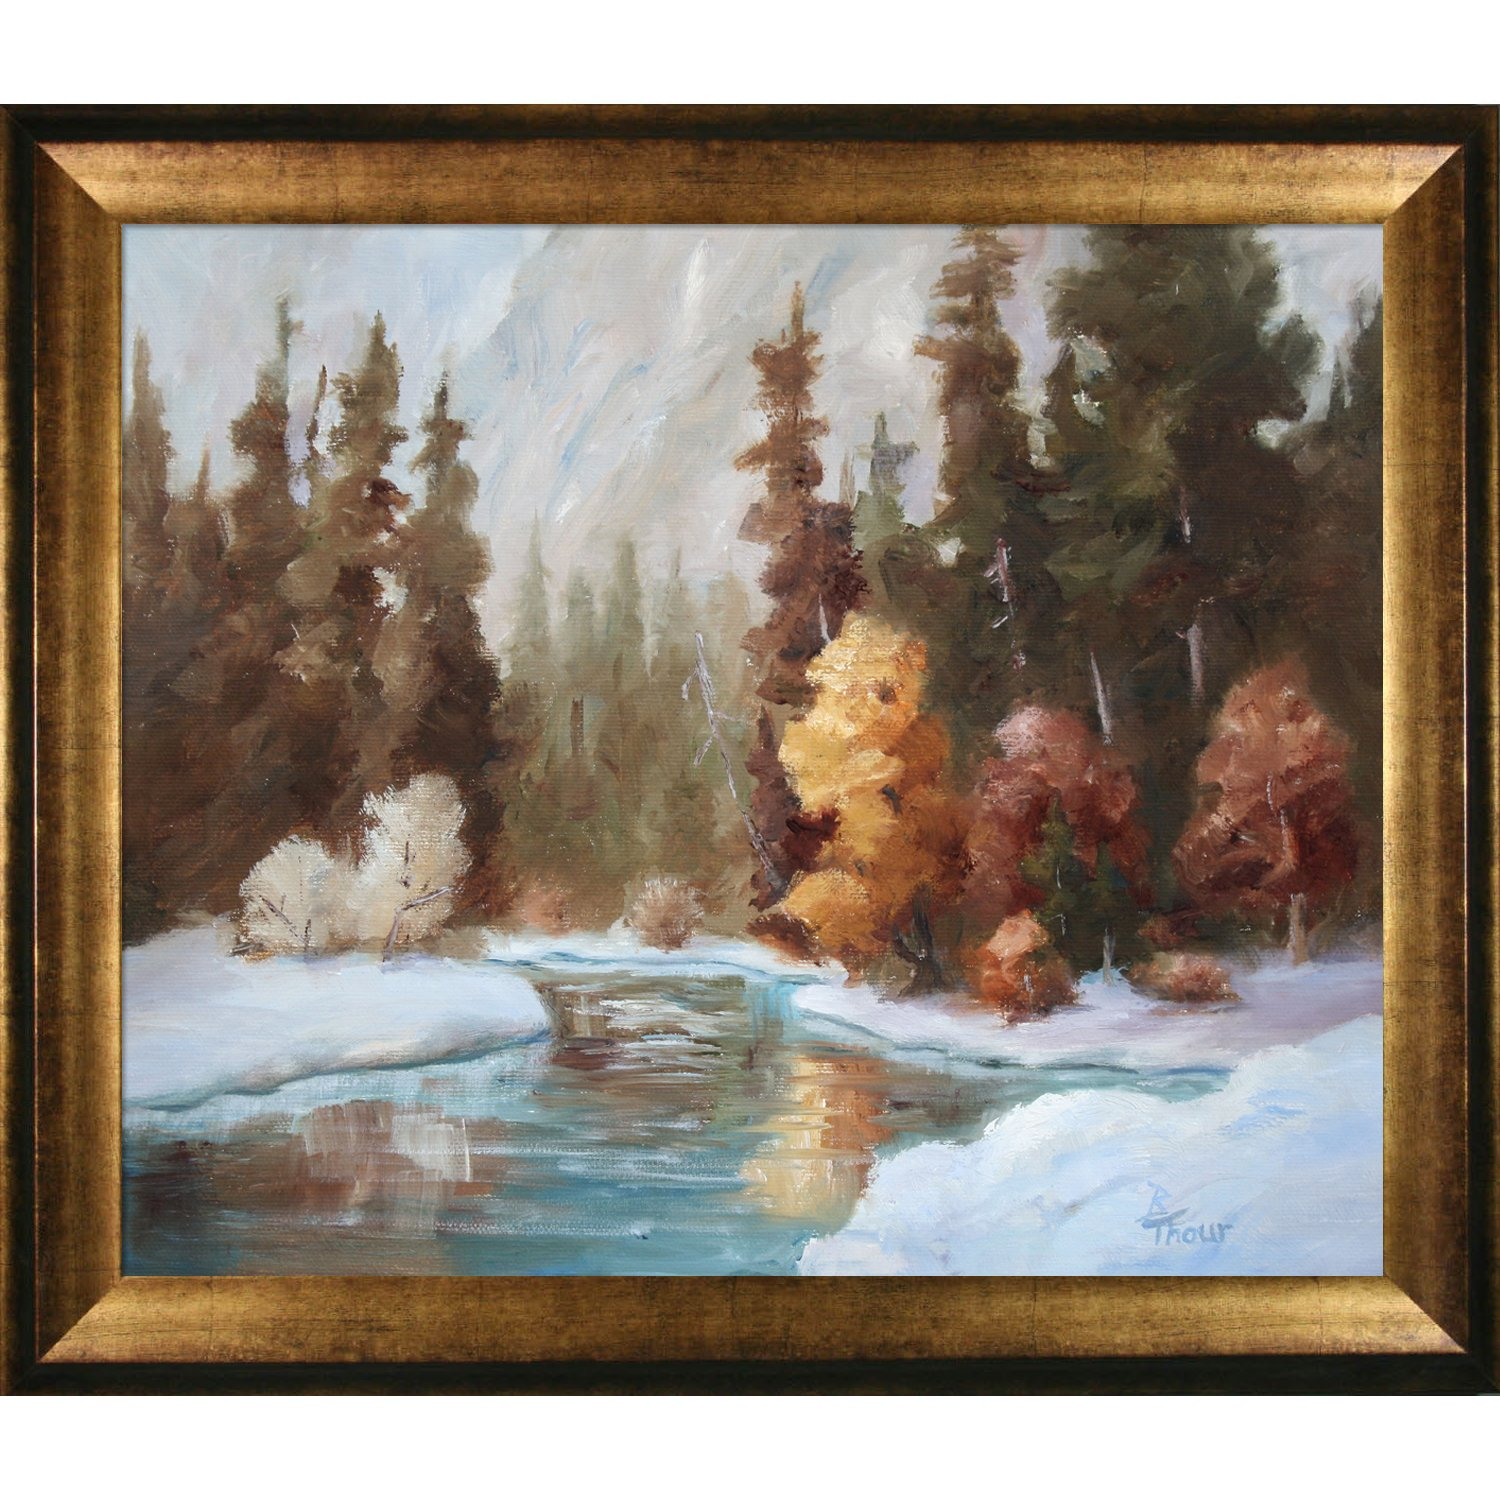 Antique Gold Finish overstockArt Artistbe Winter Landscape by Brenda Thour with Athenian Gold Frame